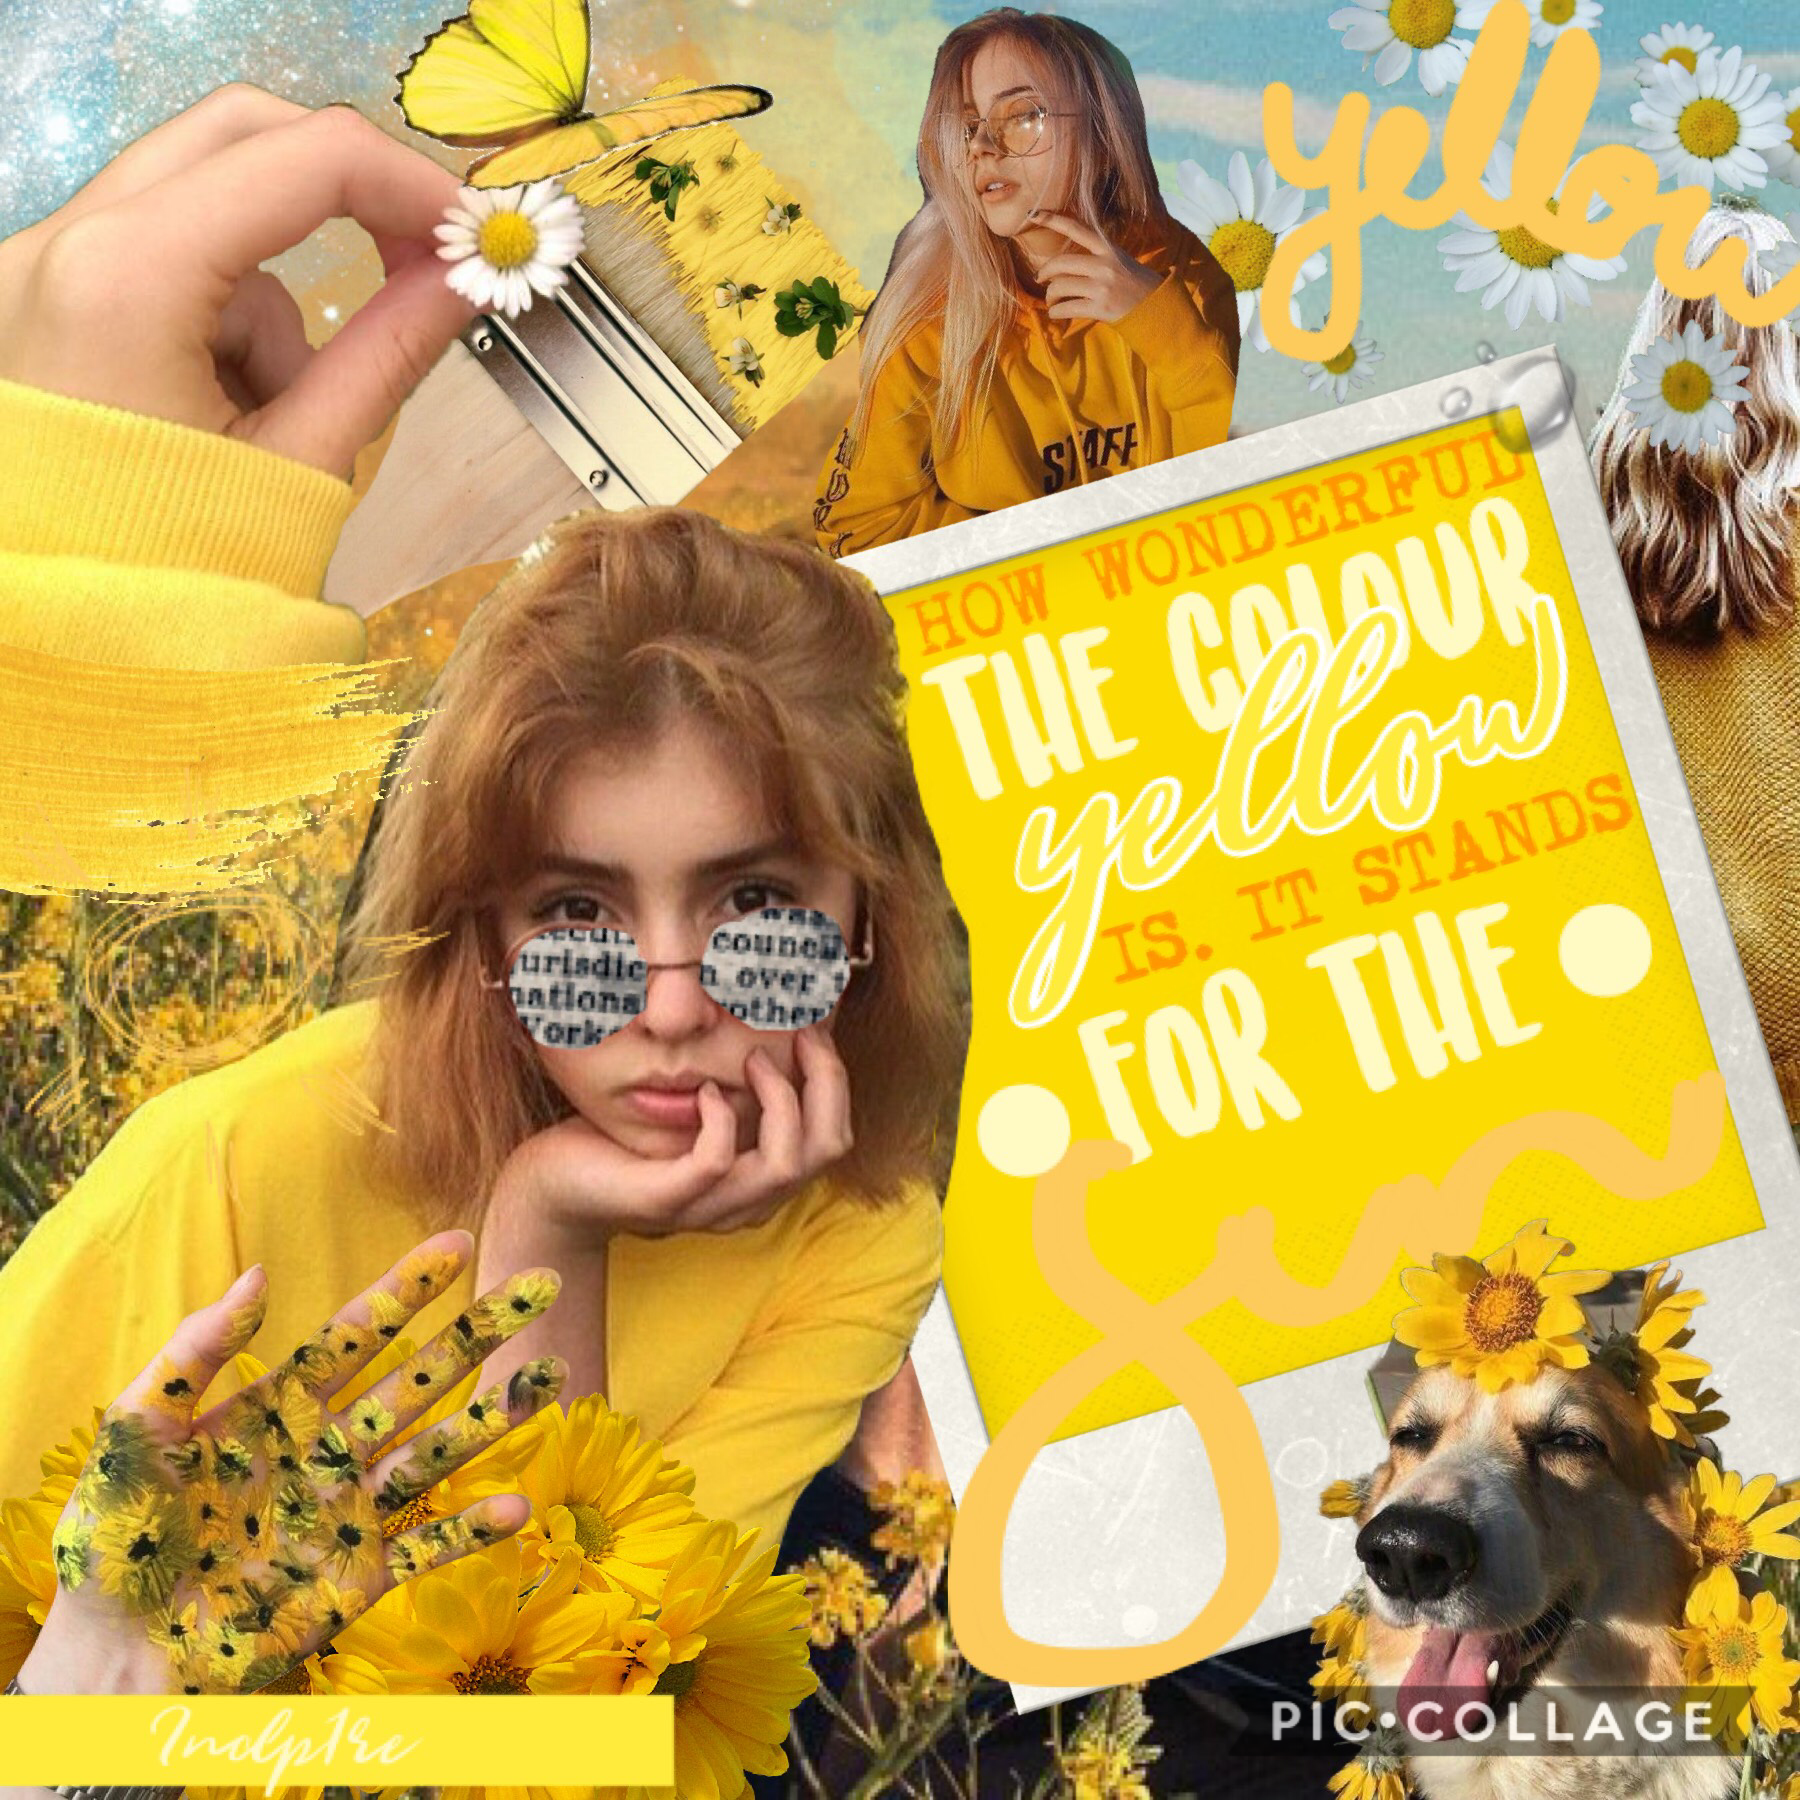 Tap Ok so this is different. It's quite messy but I hope that u like it. Plz rate 1-10 (again) tysm💕 QOTD:🍍 or 🍉 AOTD:probably 🍍